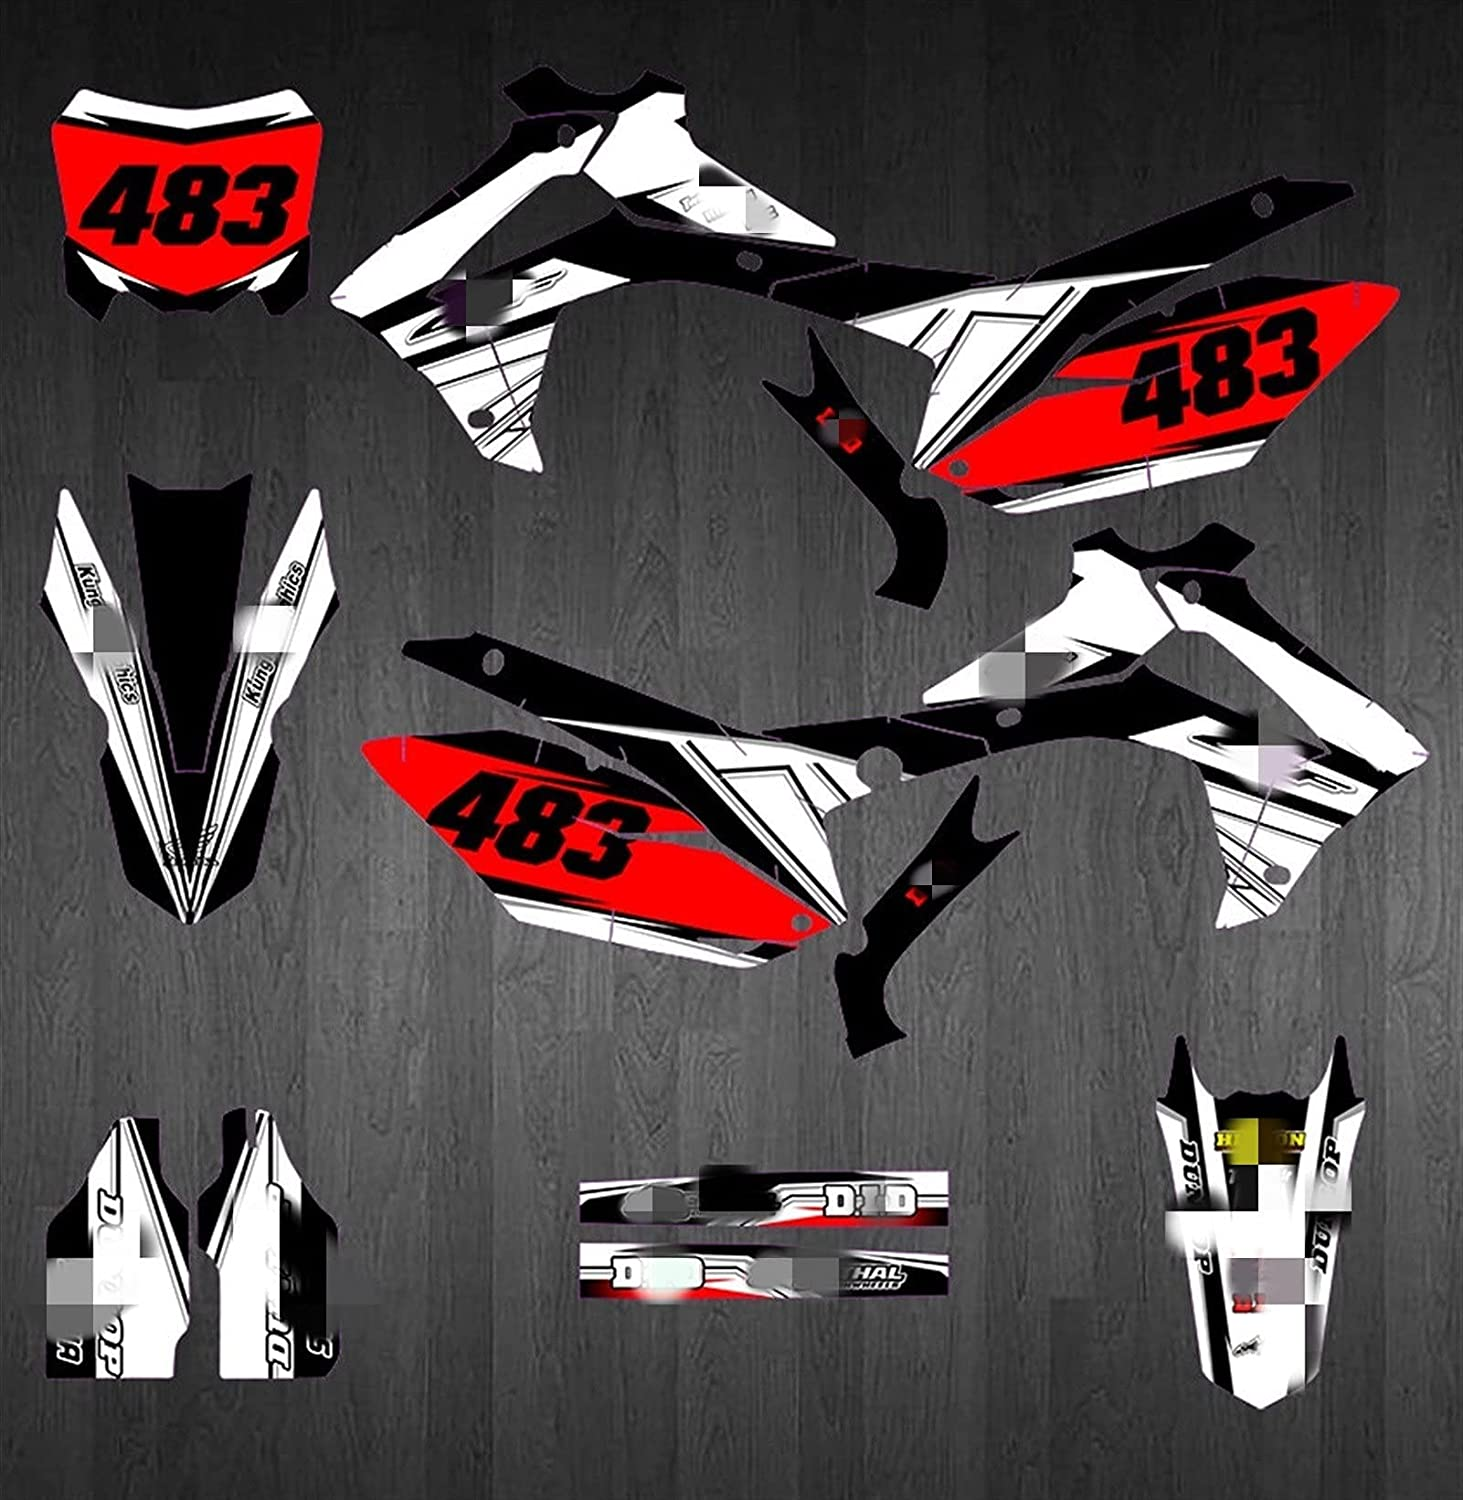 2021 Kansas City Mall new CSMDELAY CH0331A10 Customized 3M Decals Grap Motorcycle Stickers